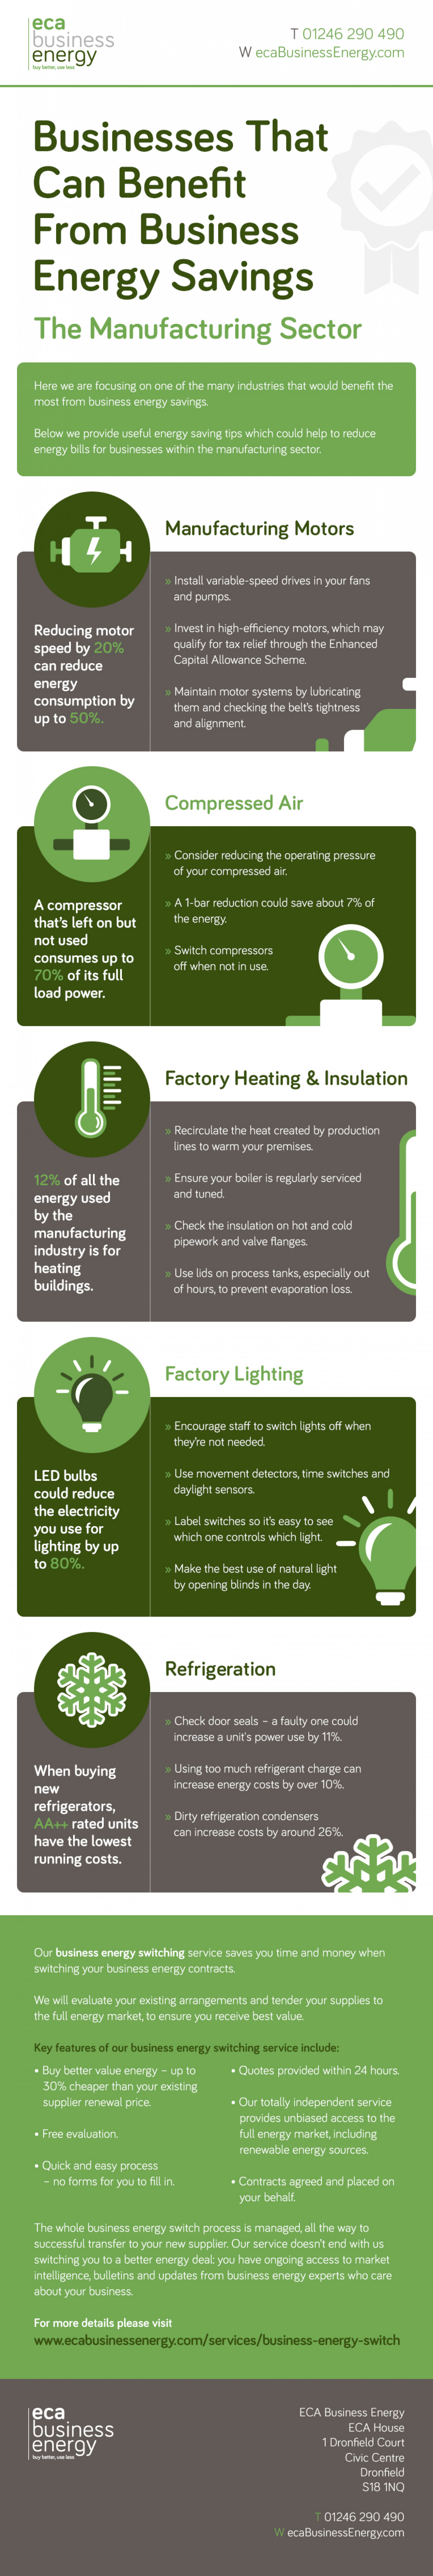 Businesses That Can Benefit From Business Energy Savings - The Manufacturing Sector Infographic